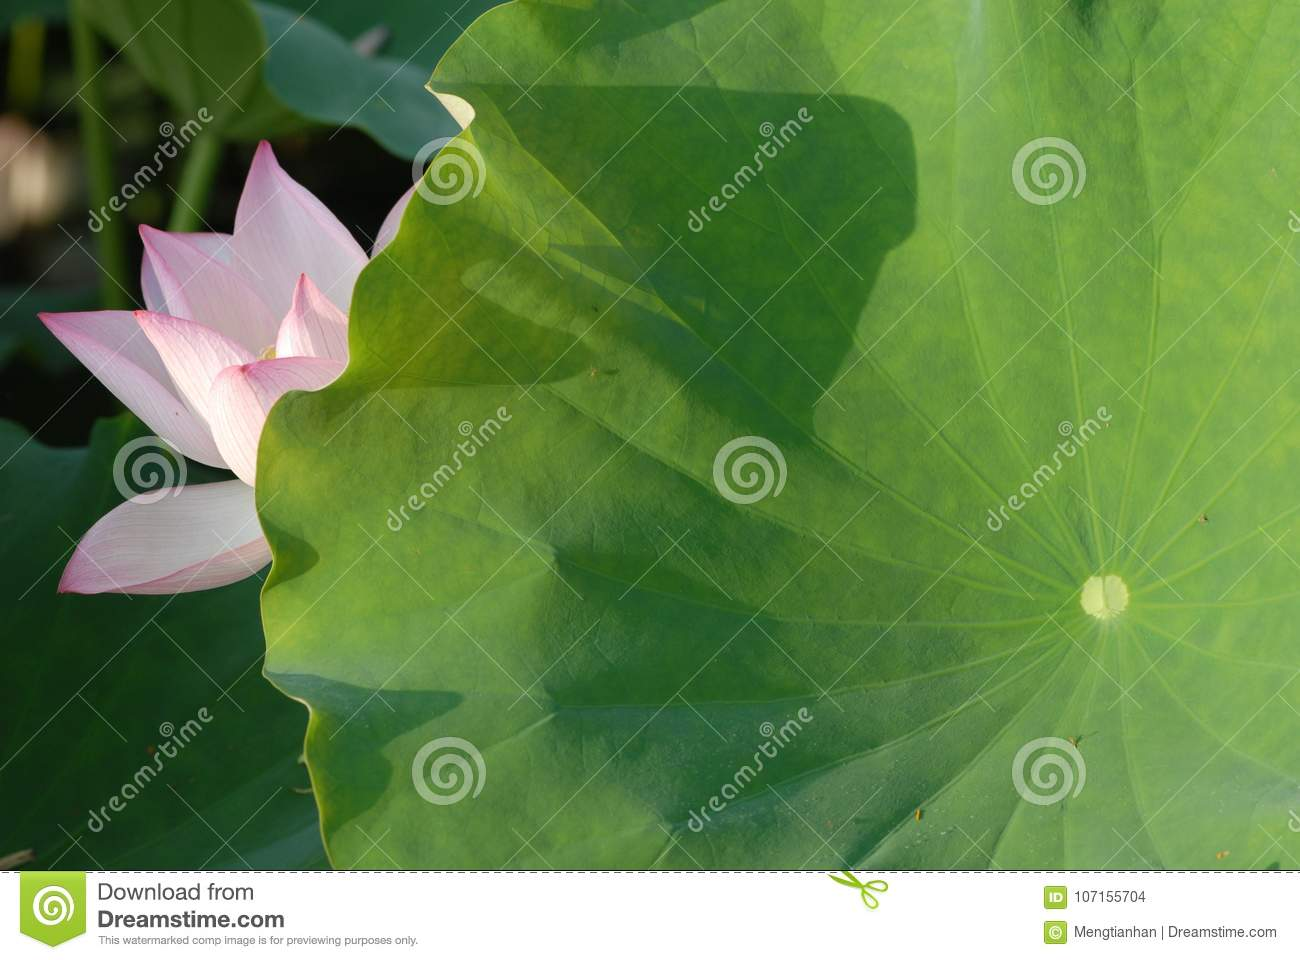 Jiangxi guangchang white lotus lotus flower stock photo image of genus proteales nelumbonaceae known as two species of the genus also known as lotus water hibiscus and so on is a perennial aquatic herb flowers izmirmasajfo